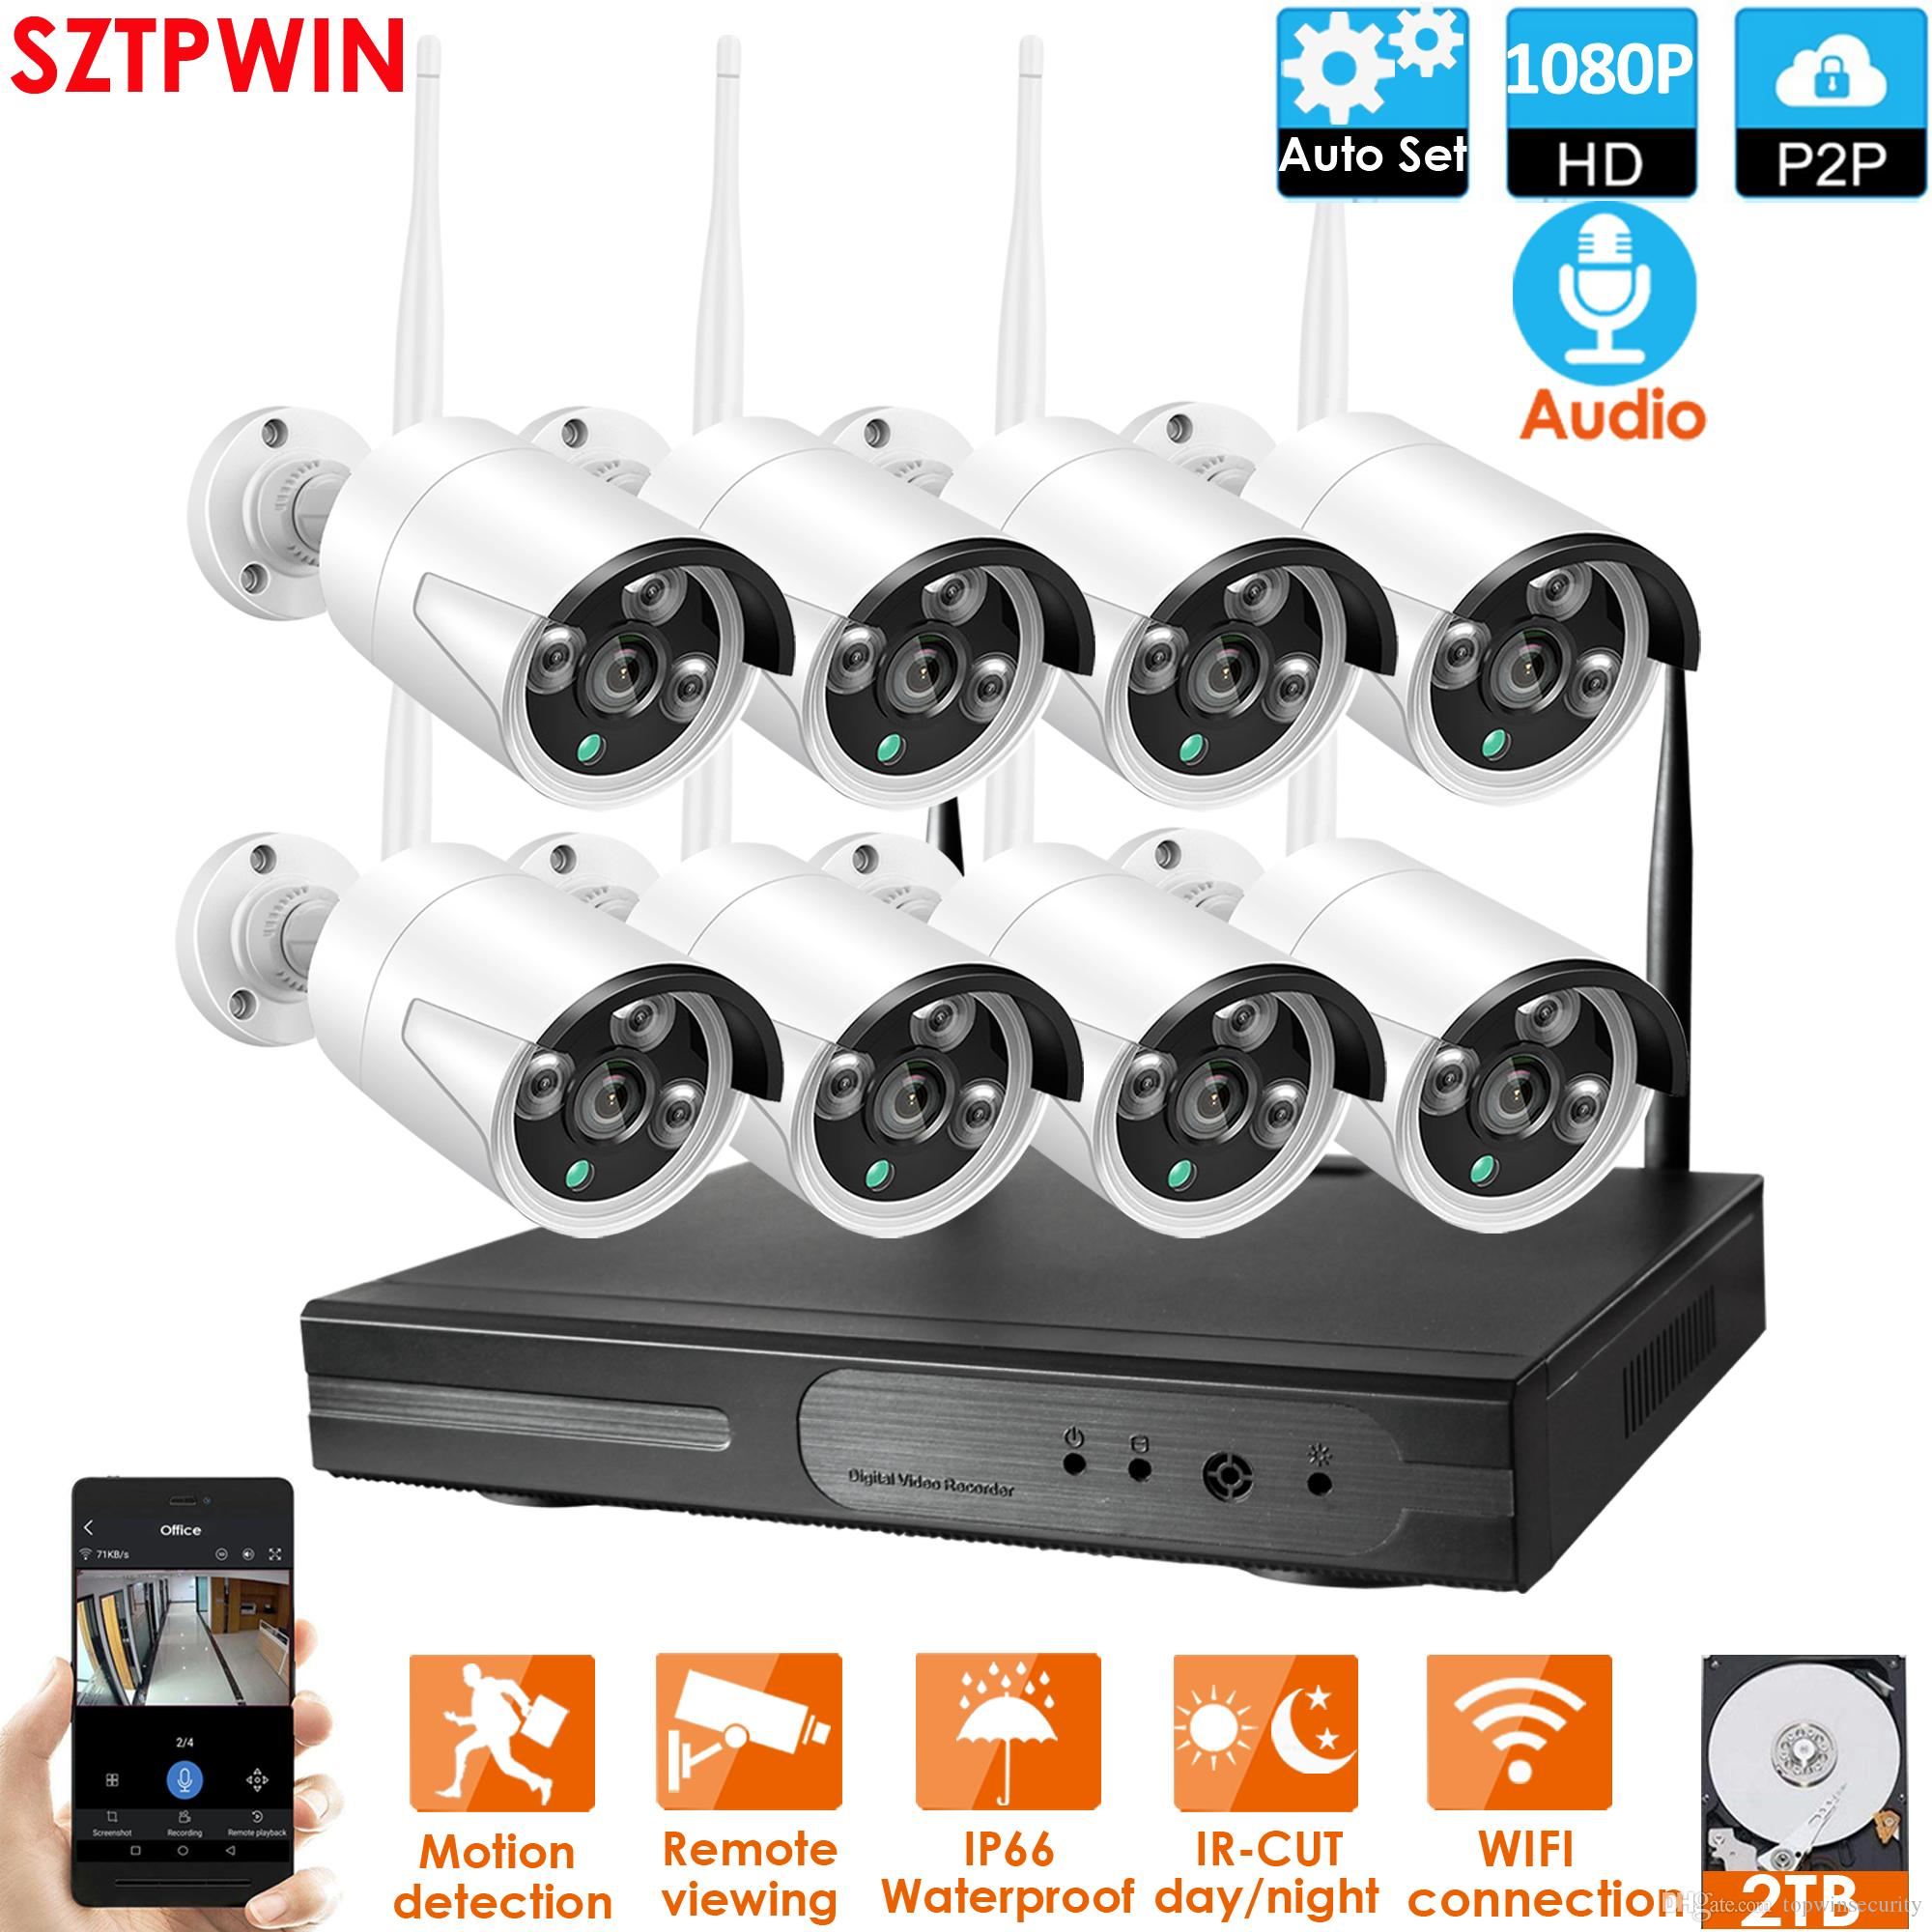 8CH Audio CCTV System Wireless 1080P NVR 8PCS 2.0MP IR Outdoor P2P Wifi IP CCTV Security Camera System Surveillance Kit